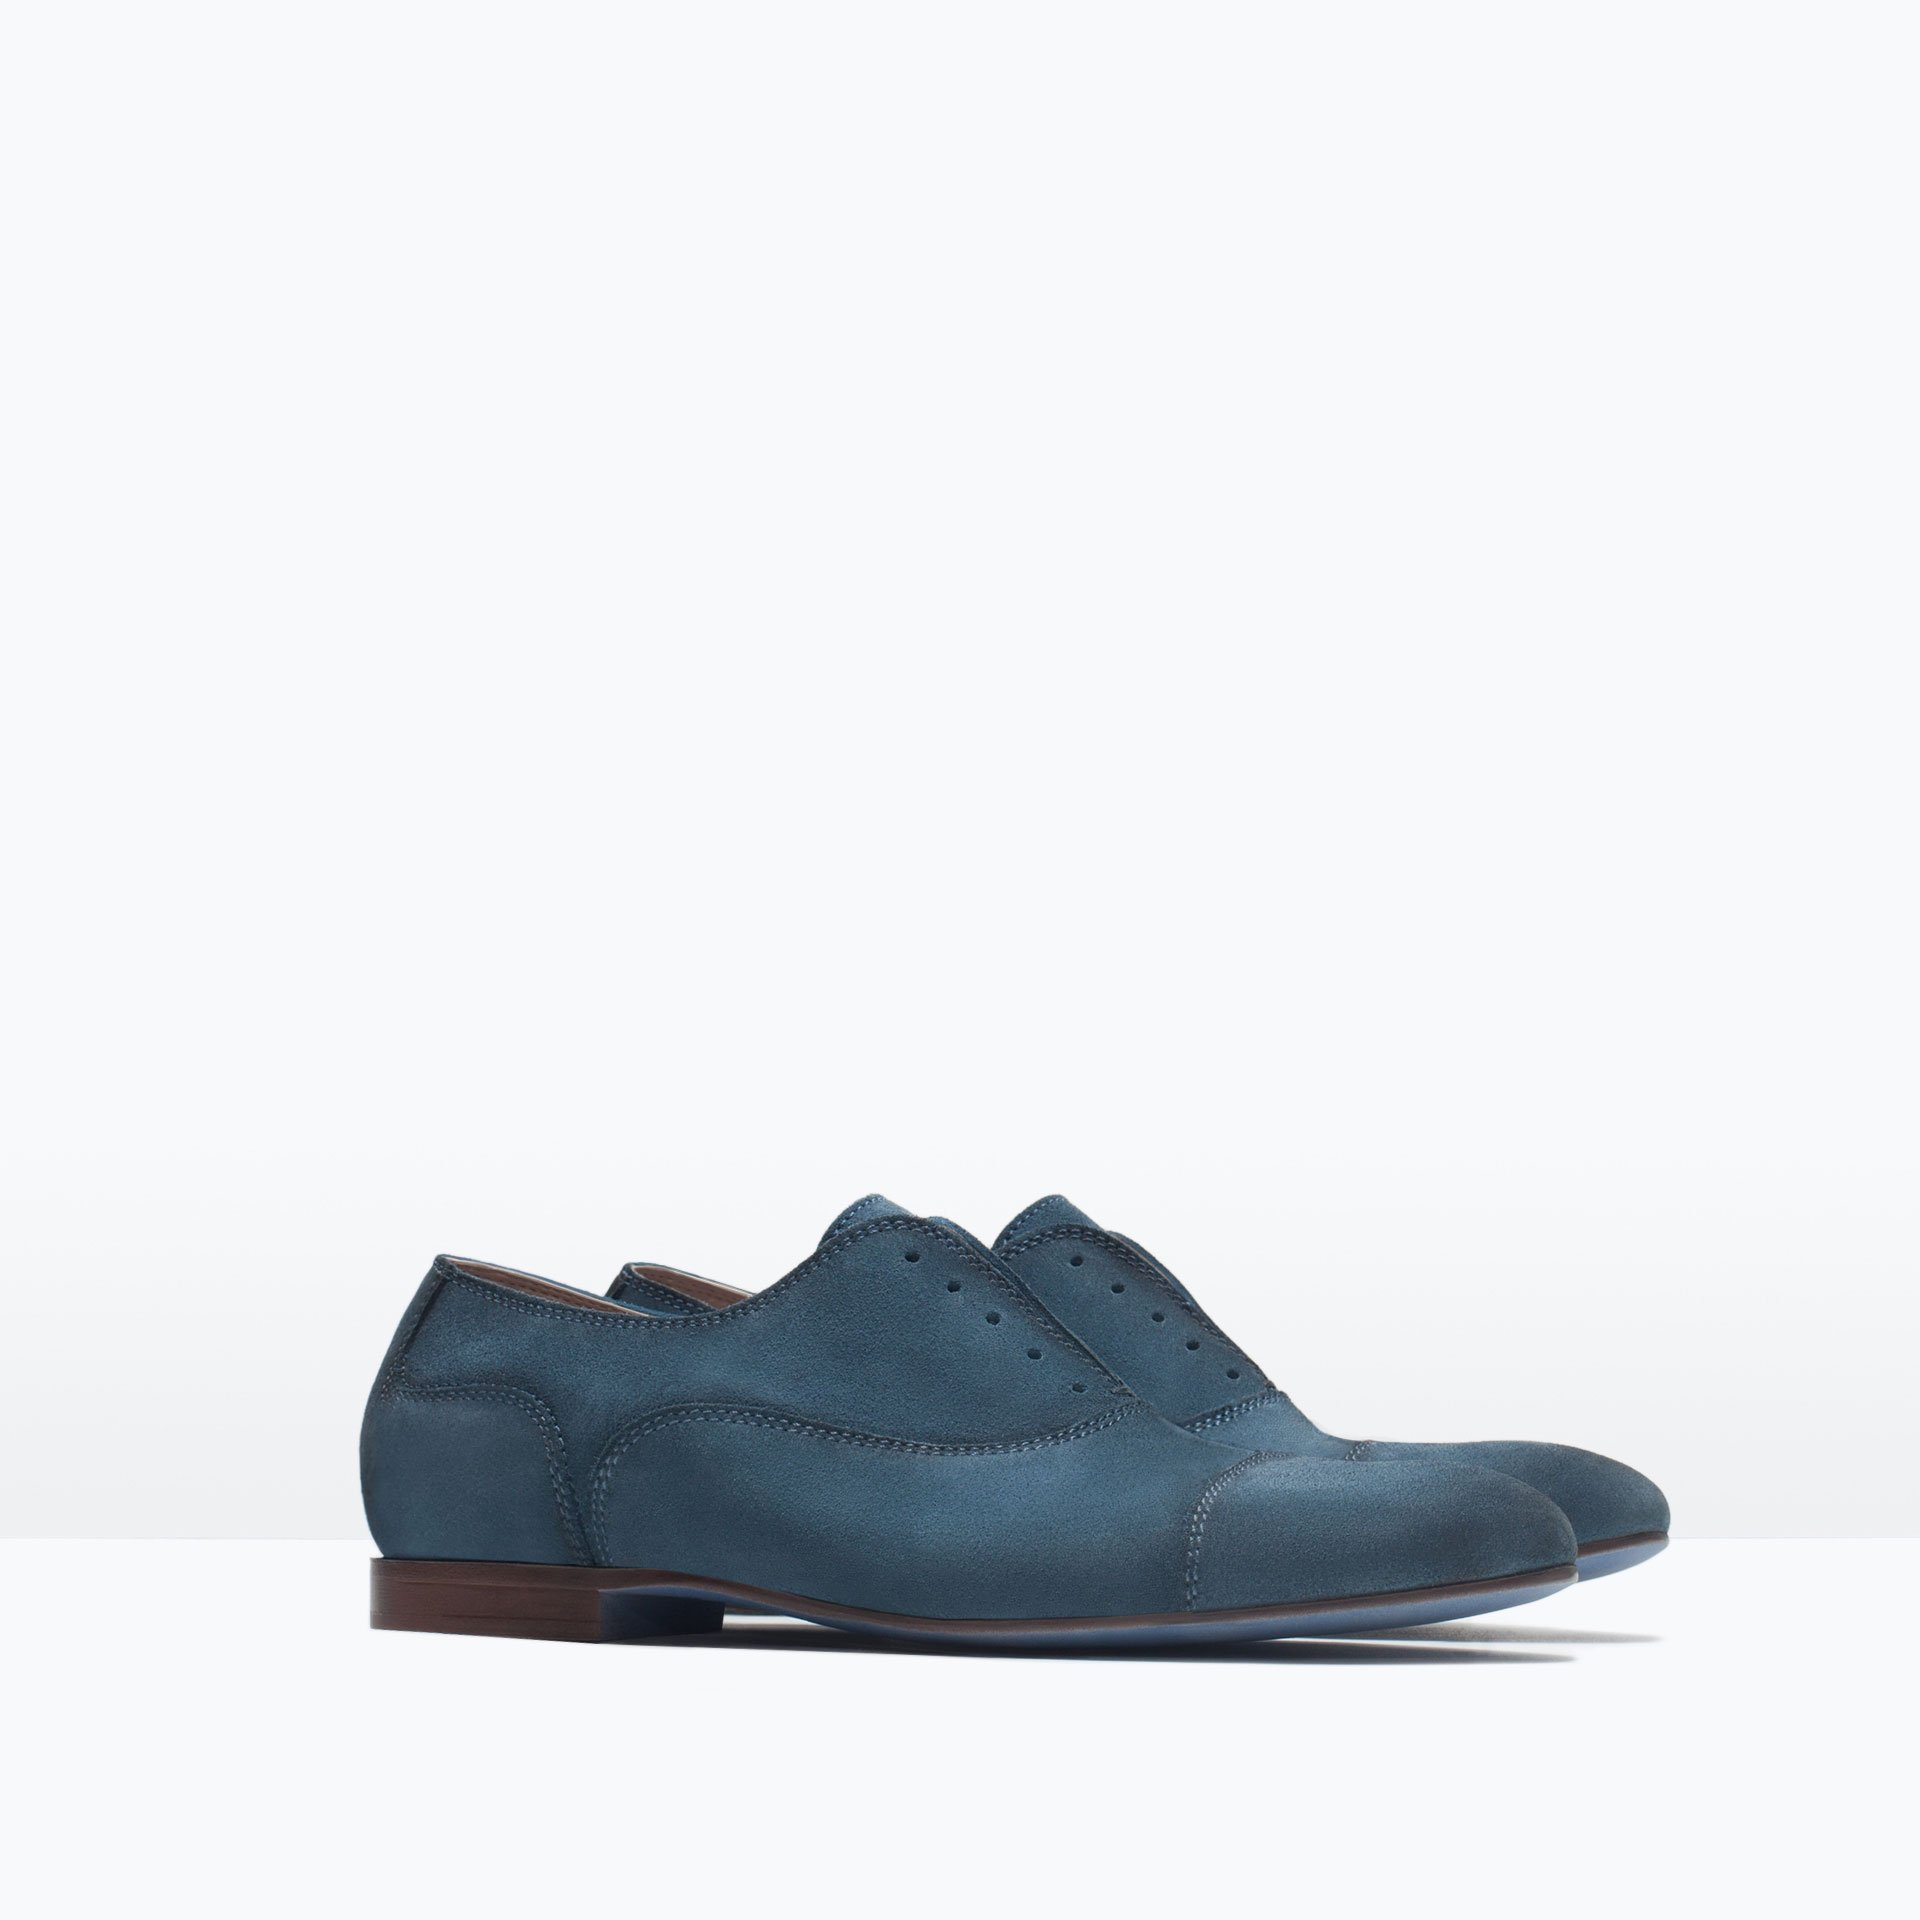 Zara Leather Oxford Shoes With Stretch Detail In Blue For Men (Petrol Blue) | Lyst